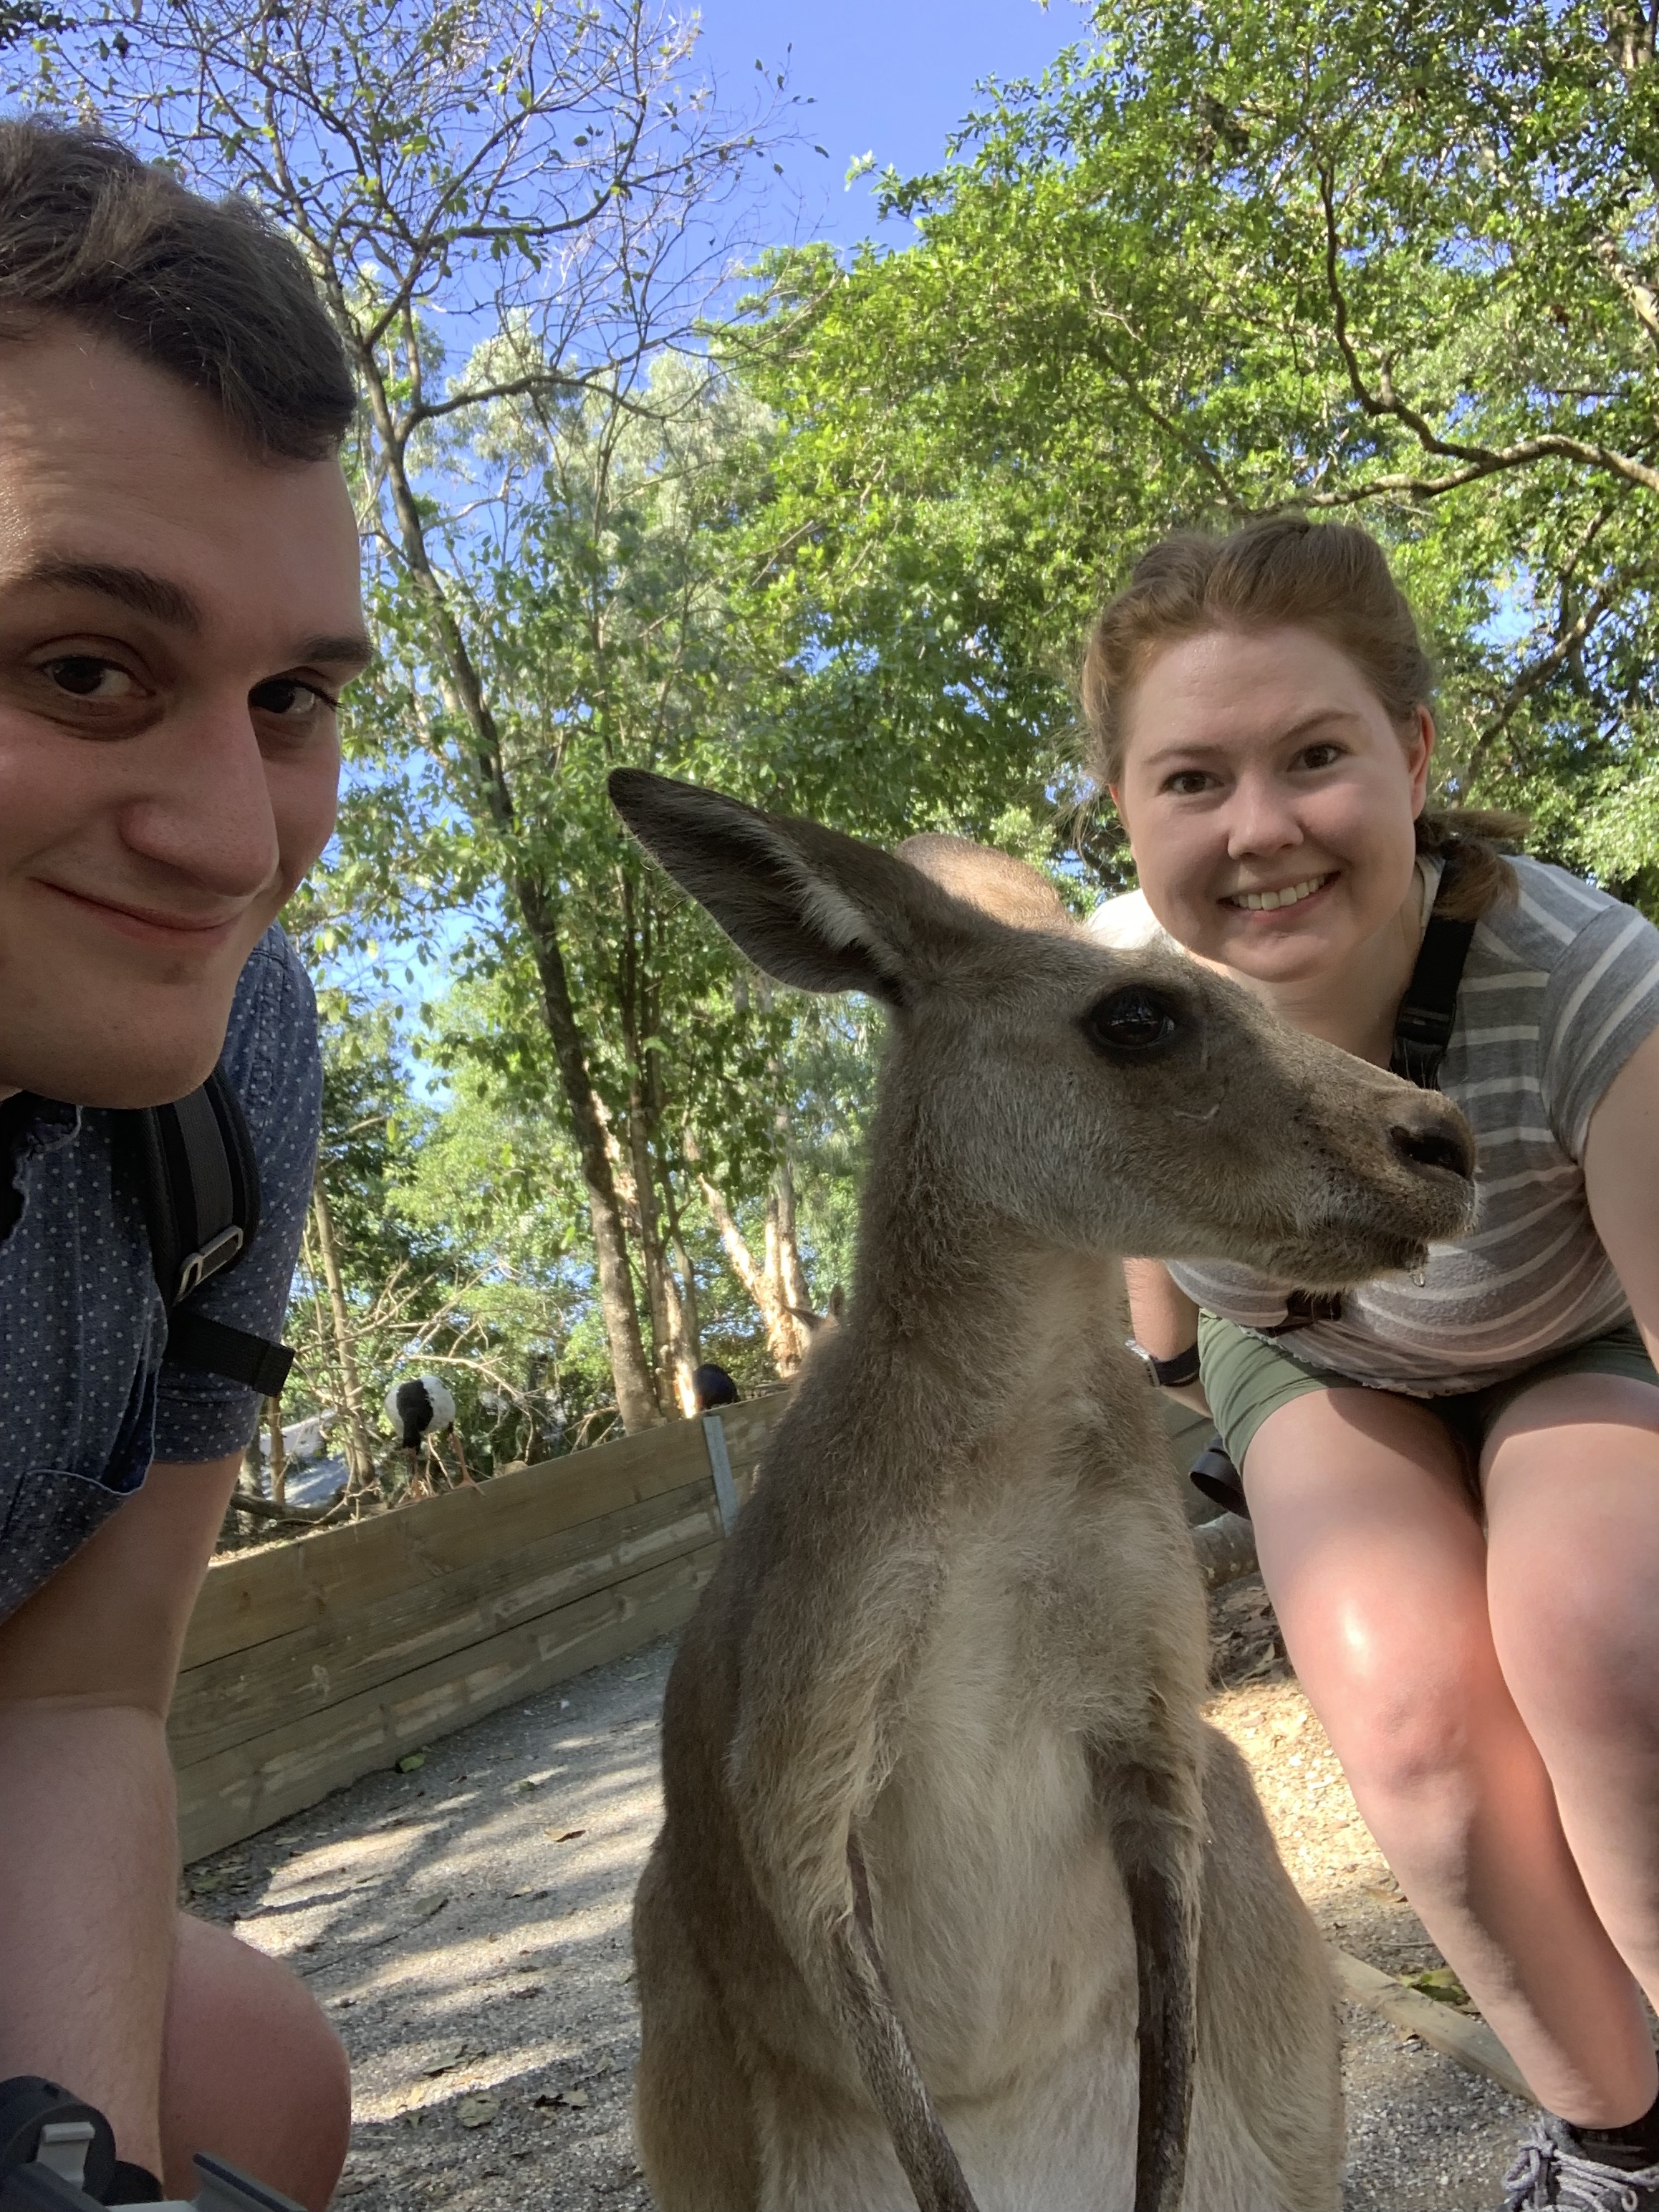 Kangaroo Selfie at The Wildlife Habitat in Port Douglas, Australia